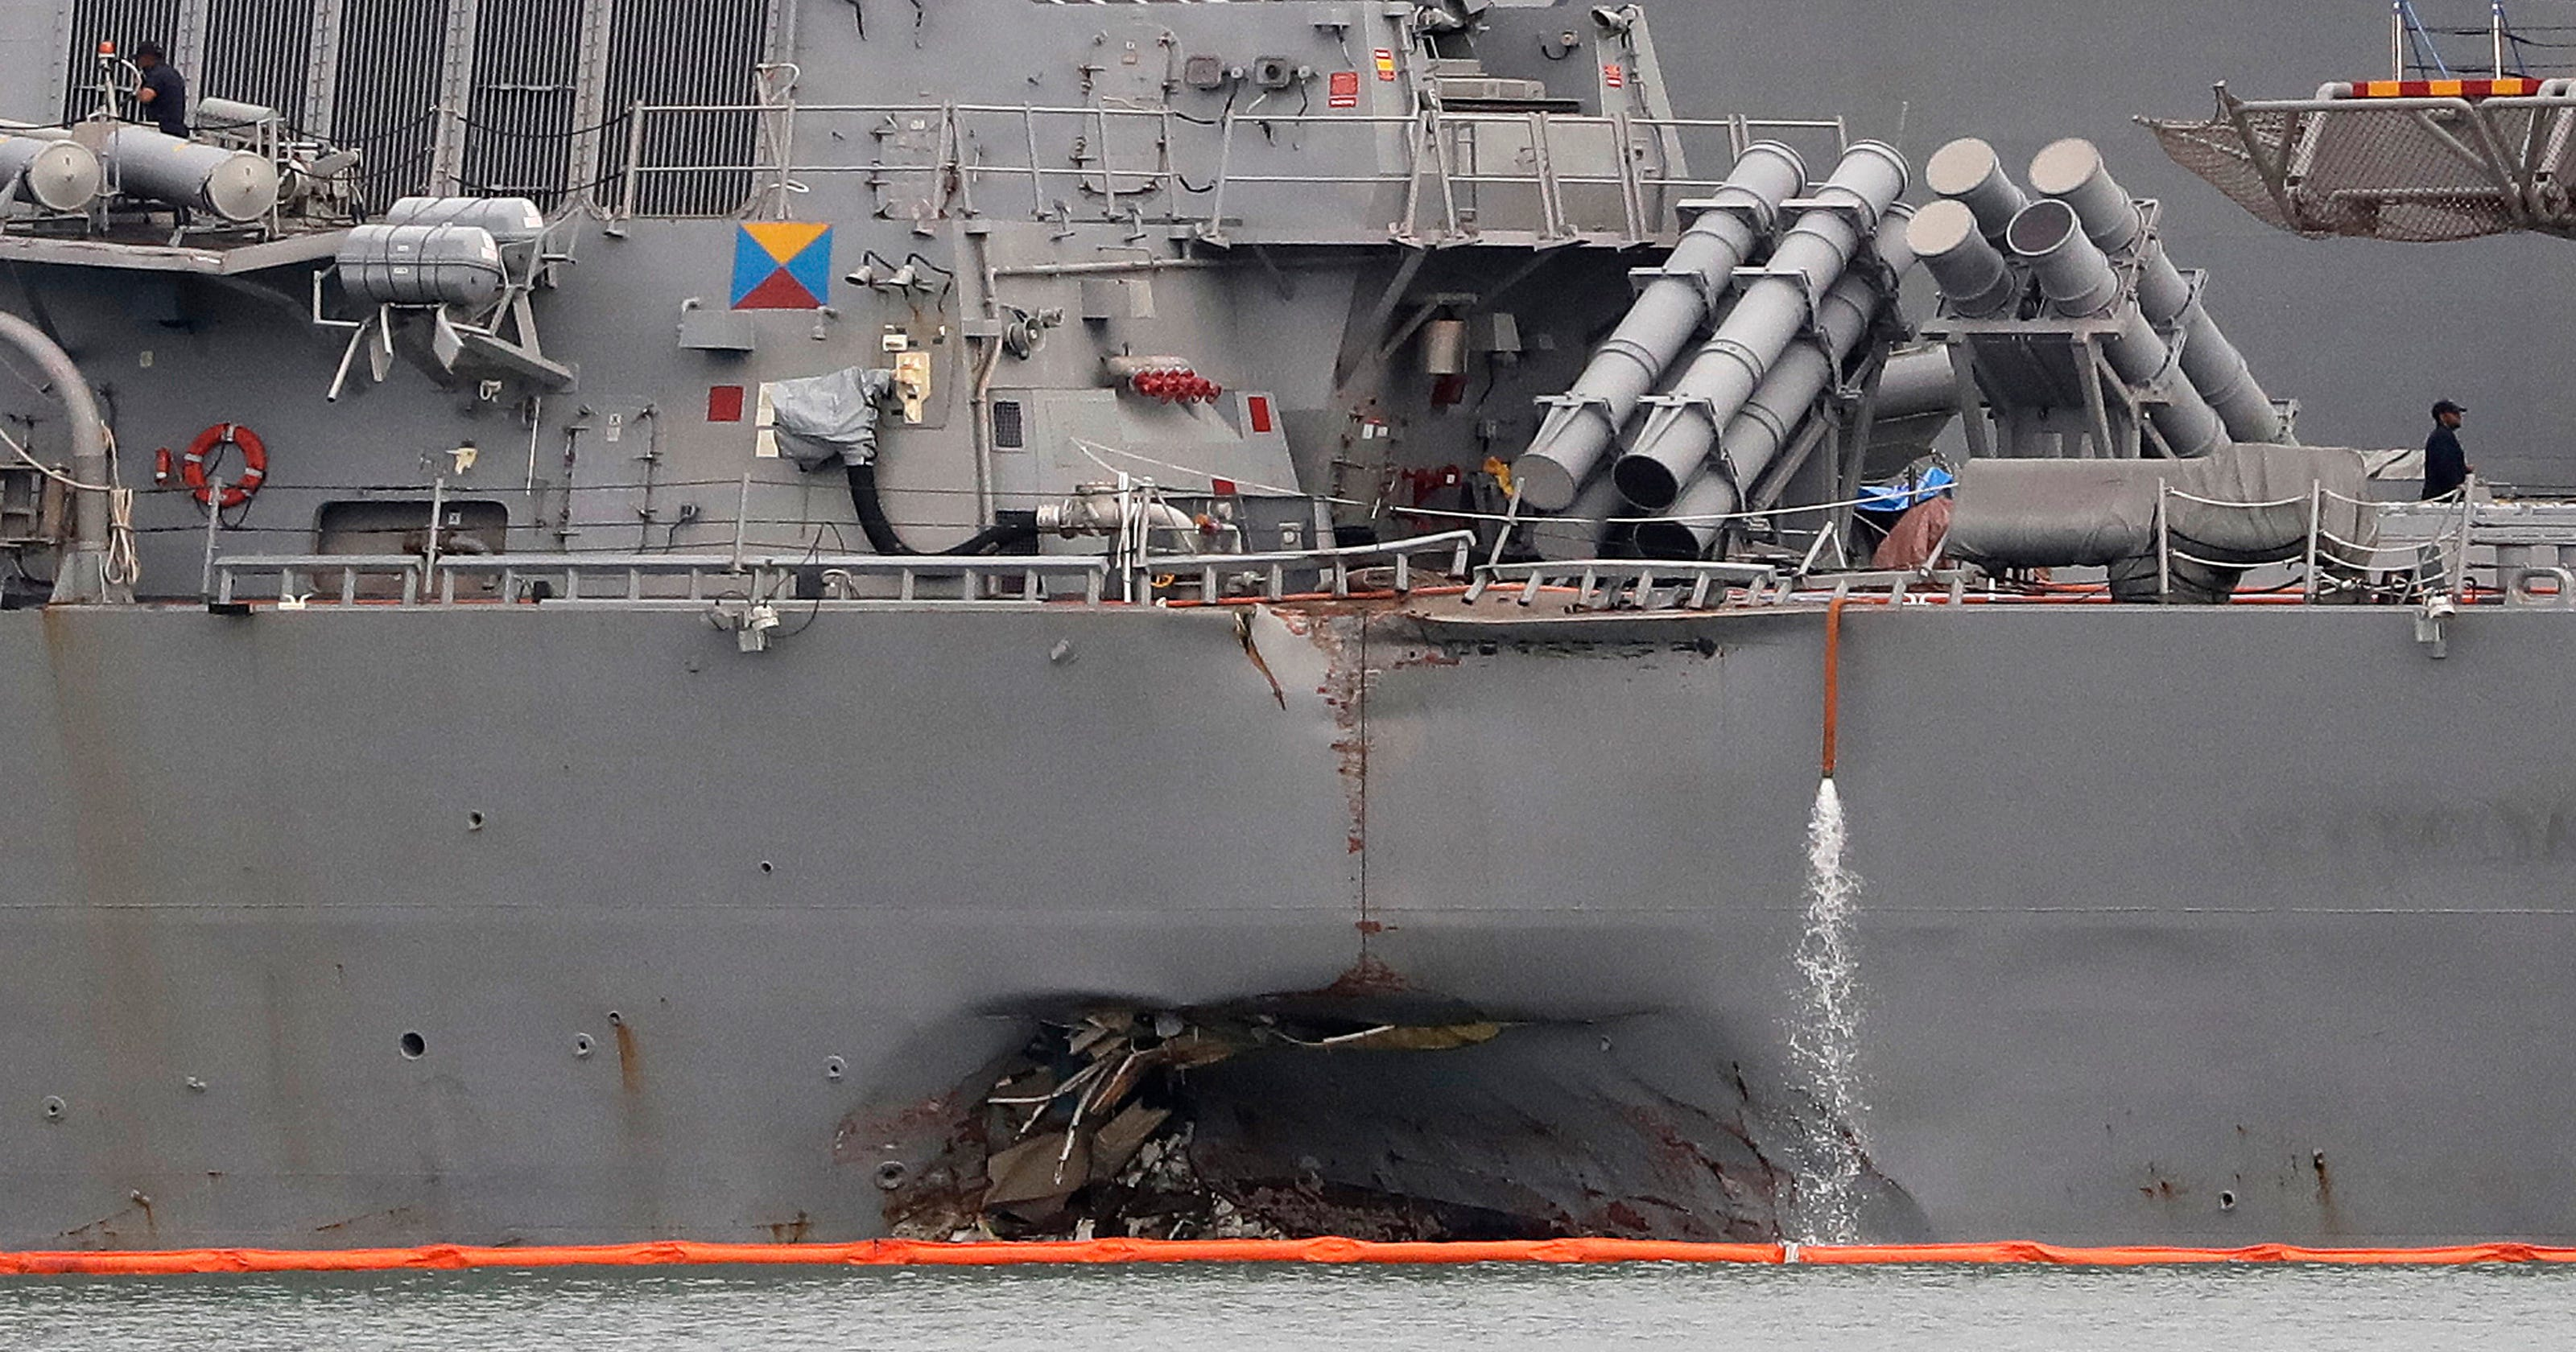 Navy collisions: Could hackers have confused GPS on USS McCain?